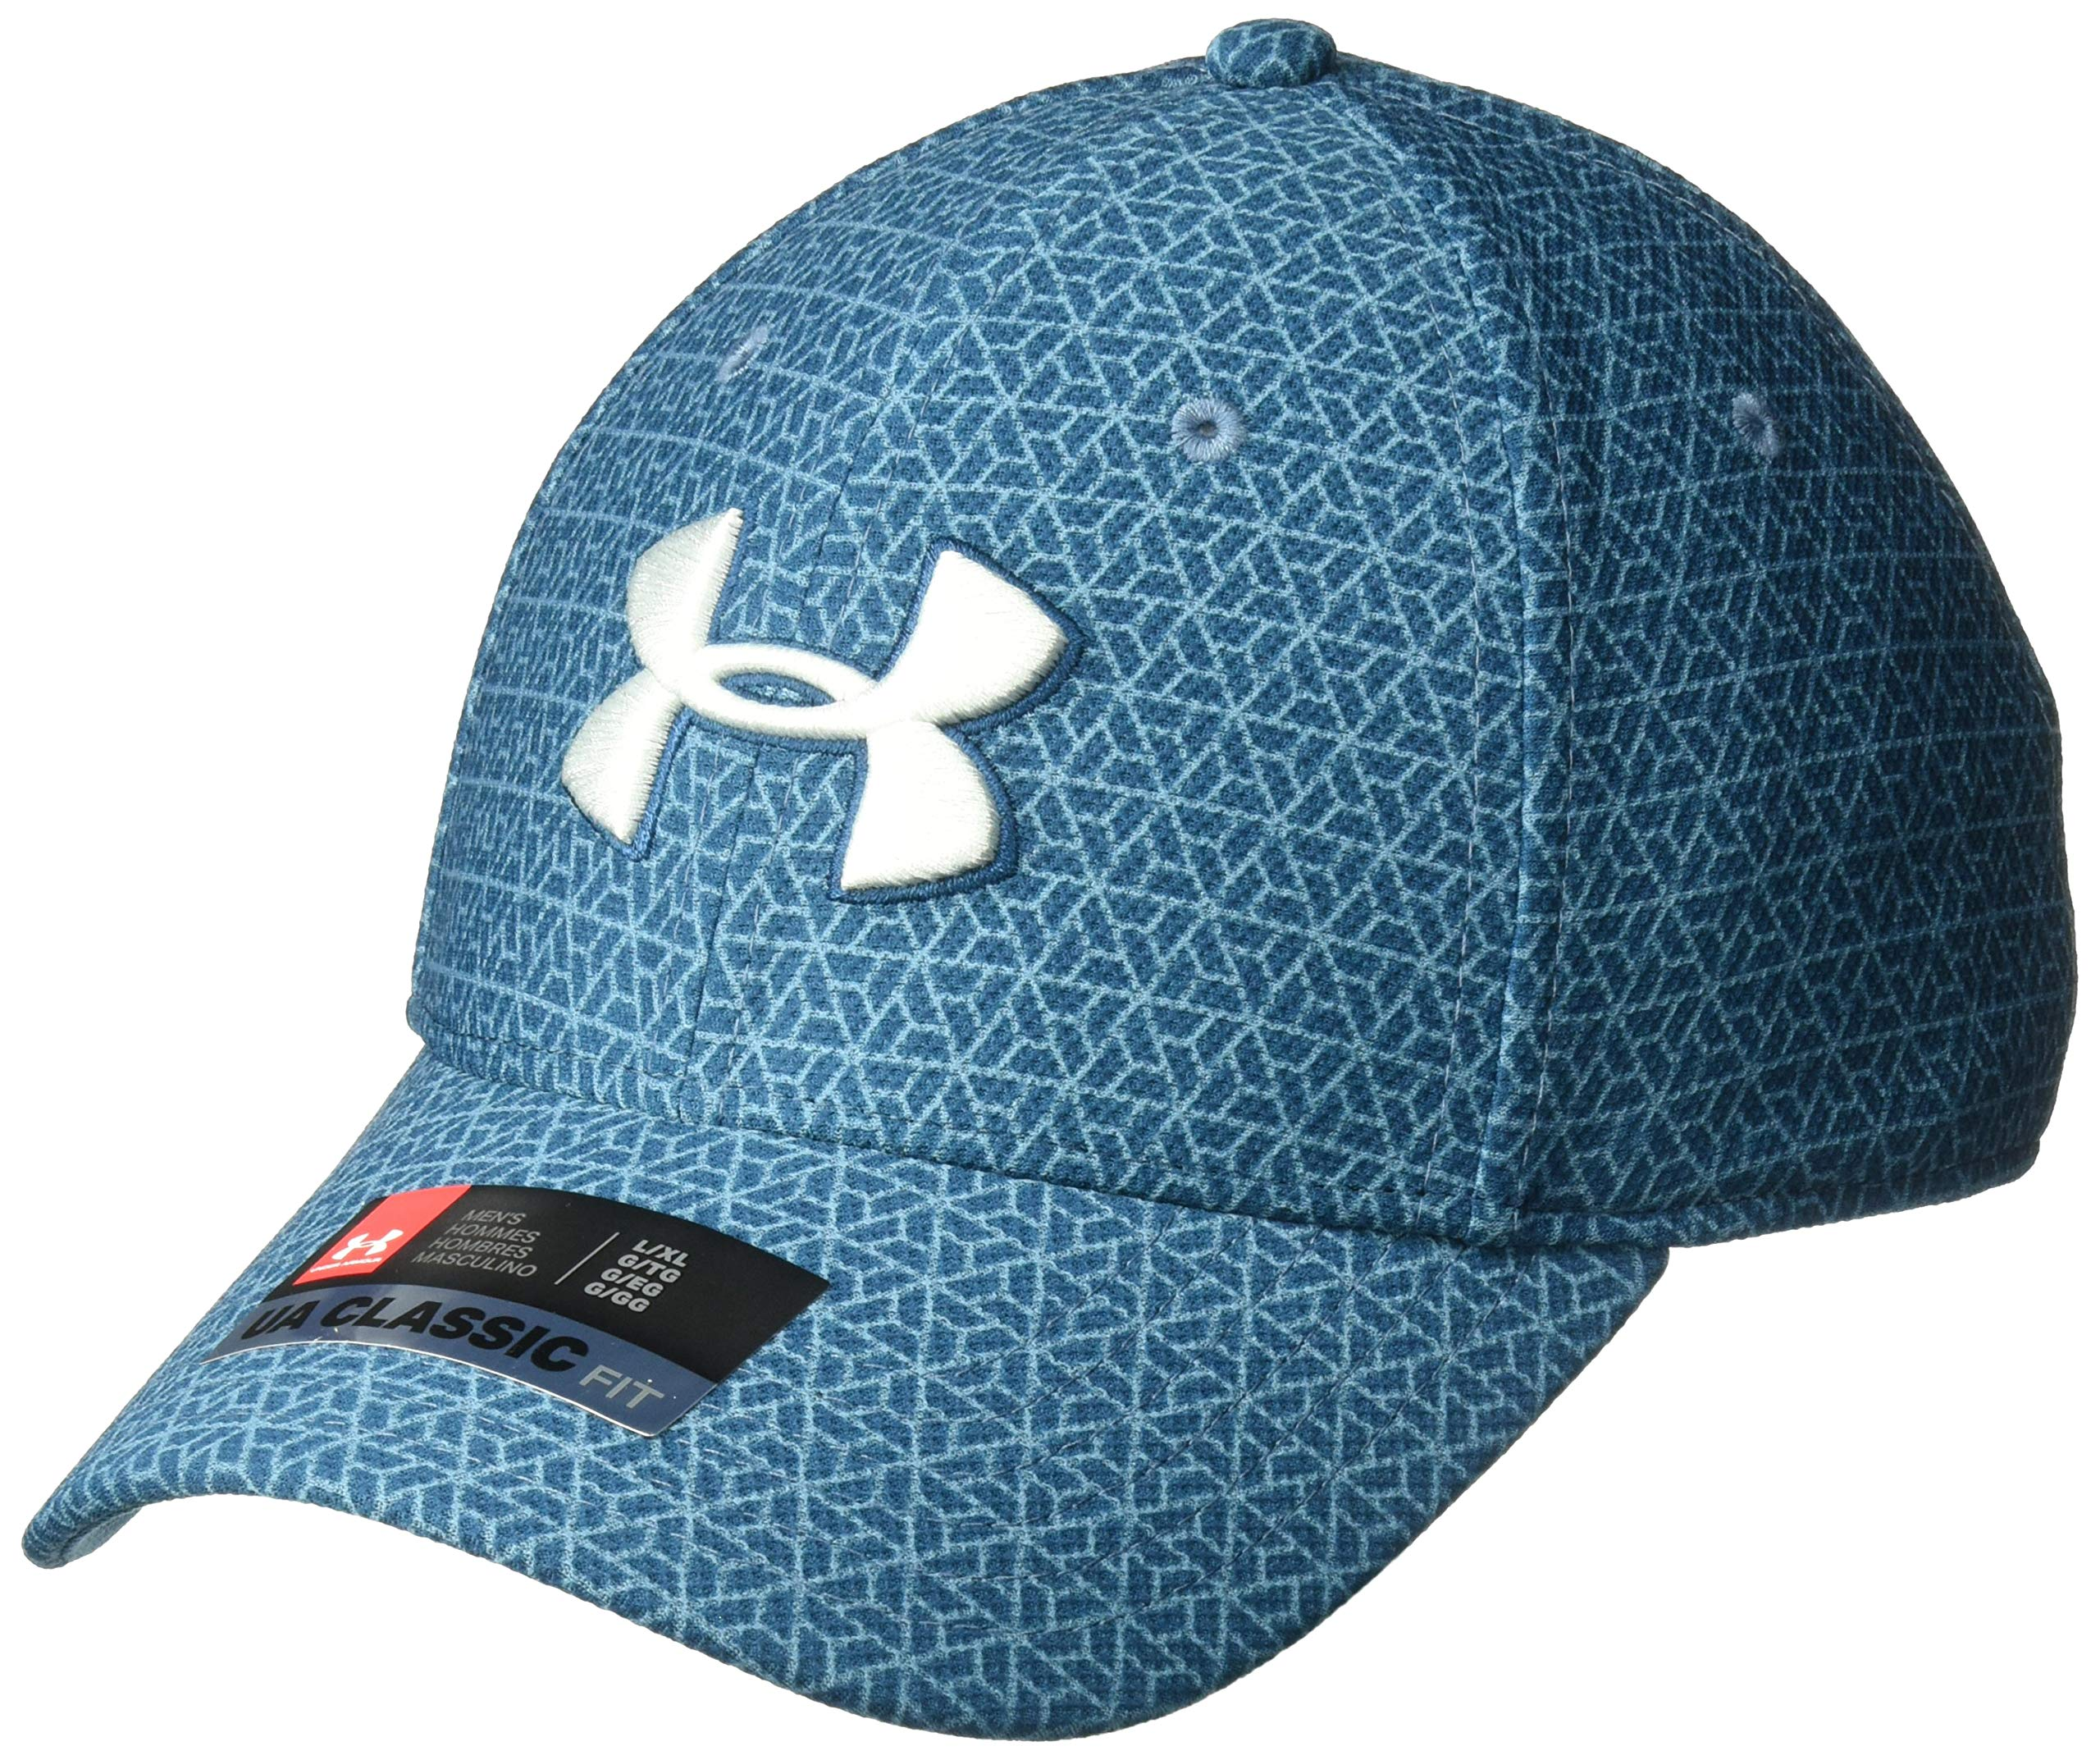 7cf241ae4fe Galleon - Under Armour Men s Printed Blitzing 3.0 Stretch Fit Cap ...